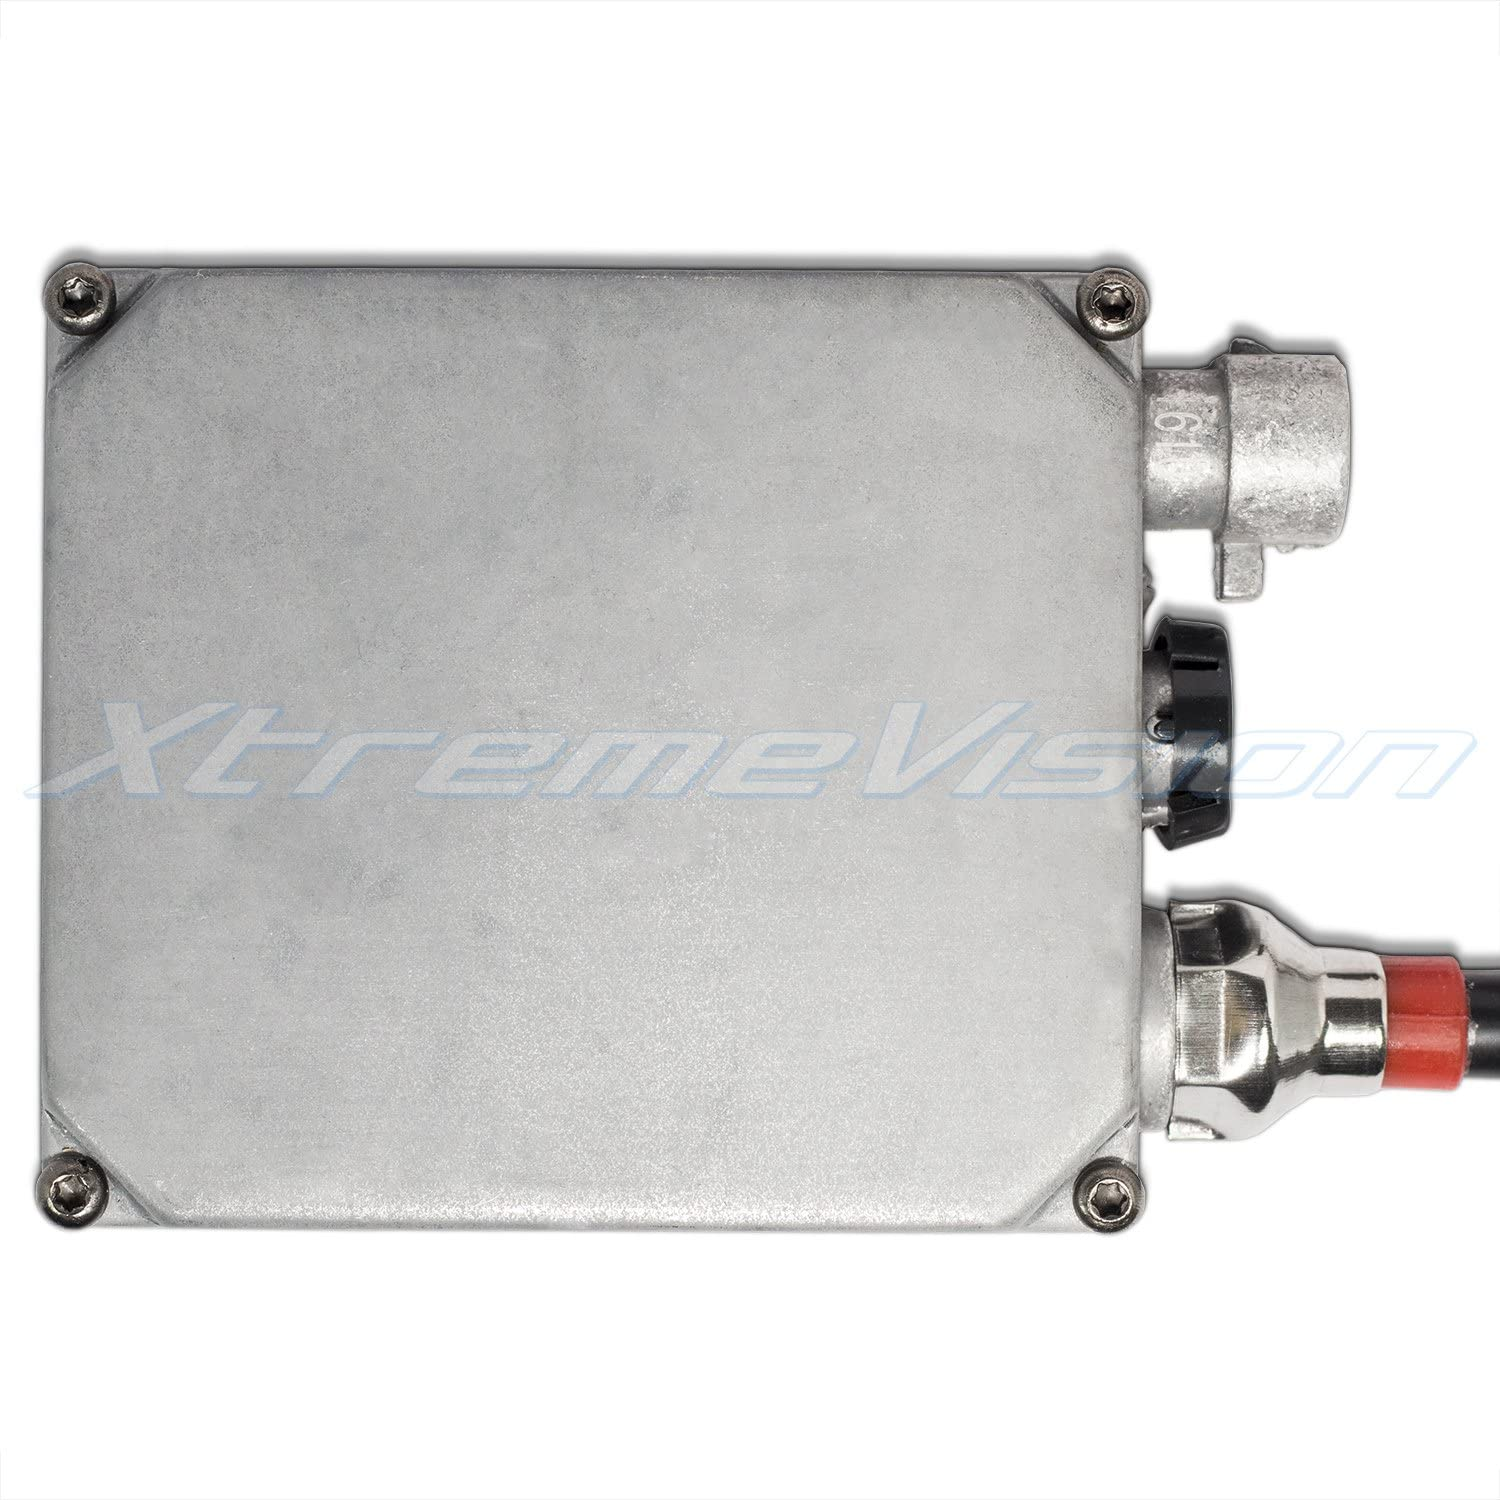 D2S//D2R XtremeVision OEM Replacement Ballast Compatible with Audi 5DV007760-15 Xenon HID Ballast Single - 1 PCS - 2 Year Warranty